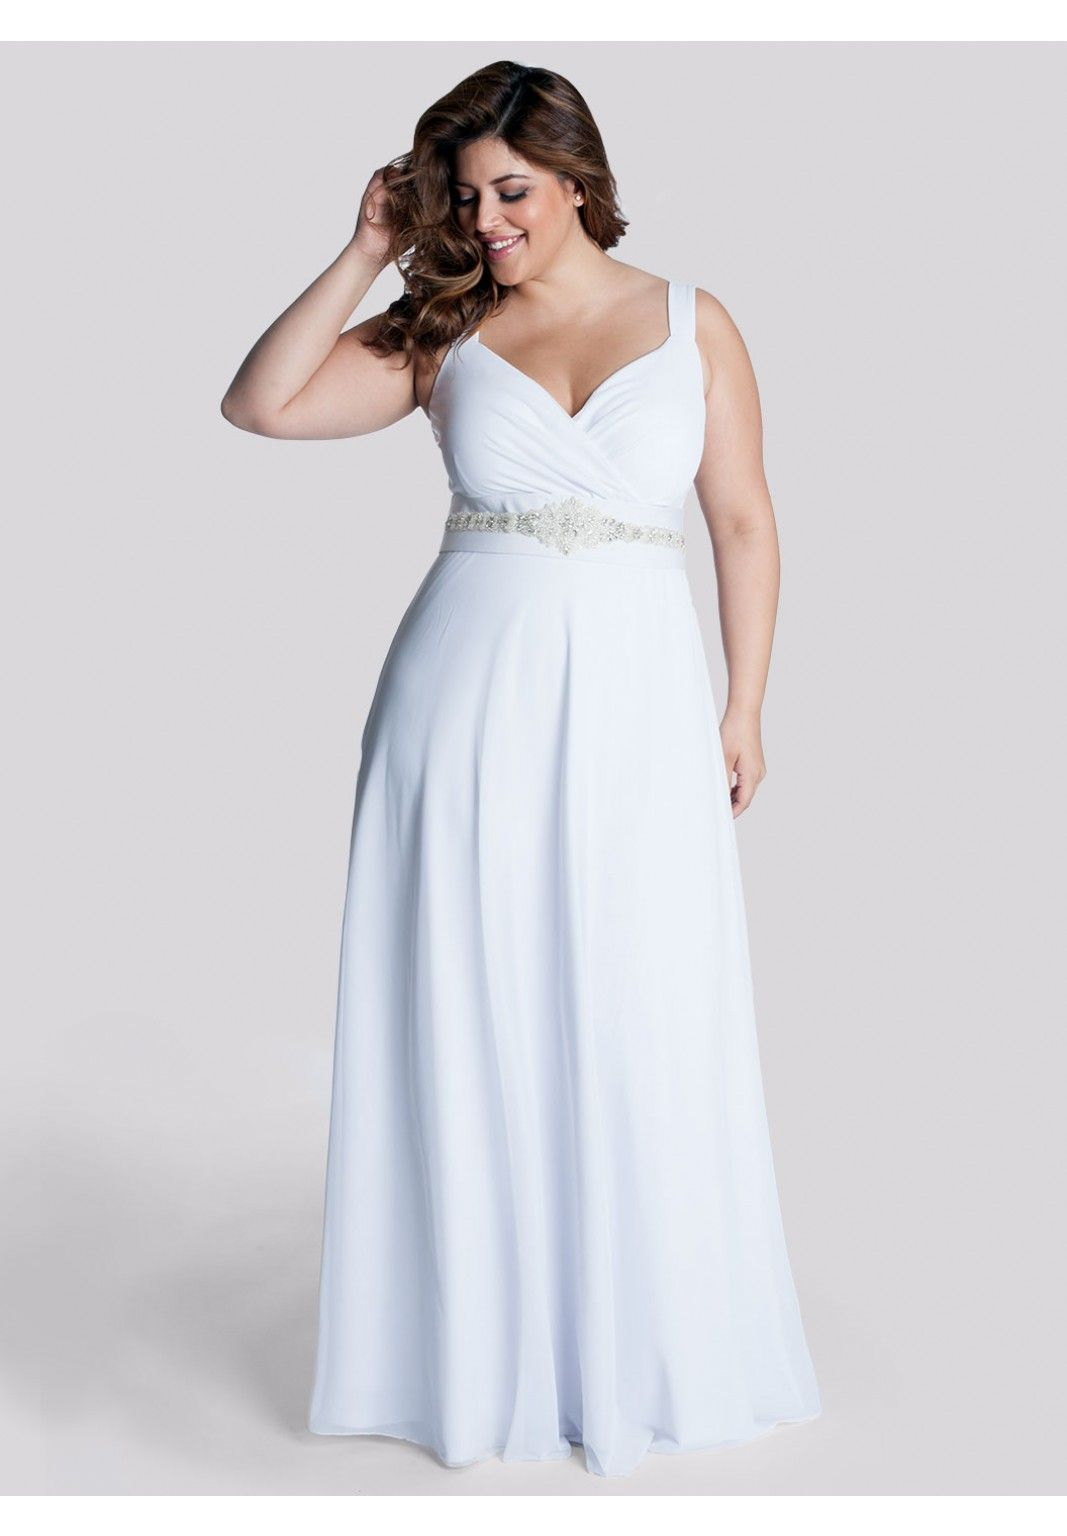 """Say """"I do"""" to the dress of your dreams. Shop for """"the one"""" today! We have beautiful plus-size wedding dresses to make your big day even more special."""